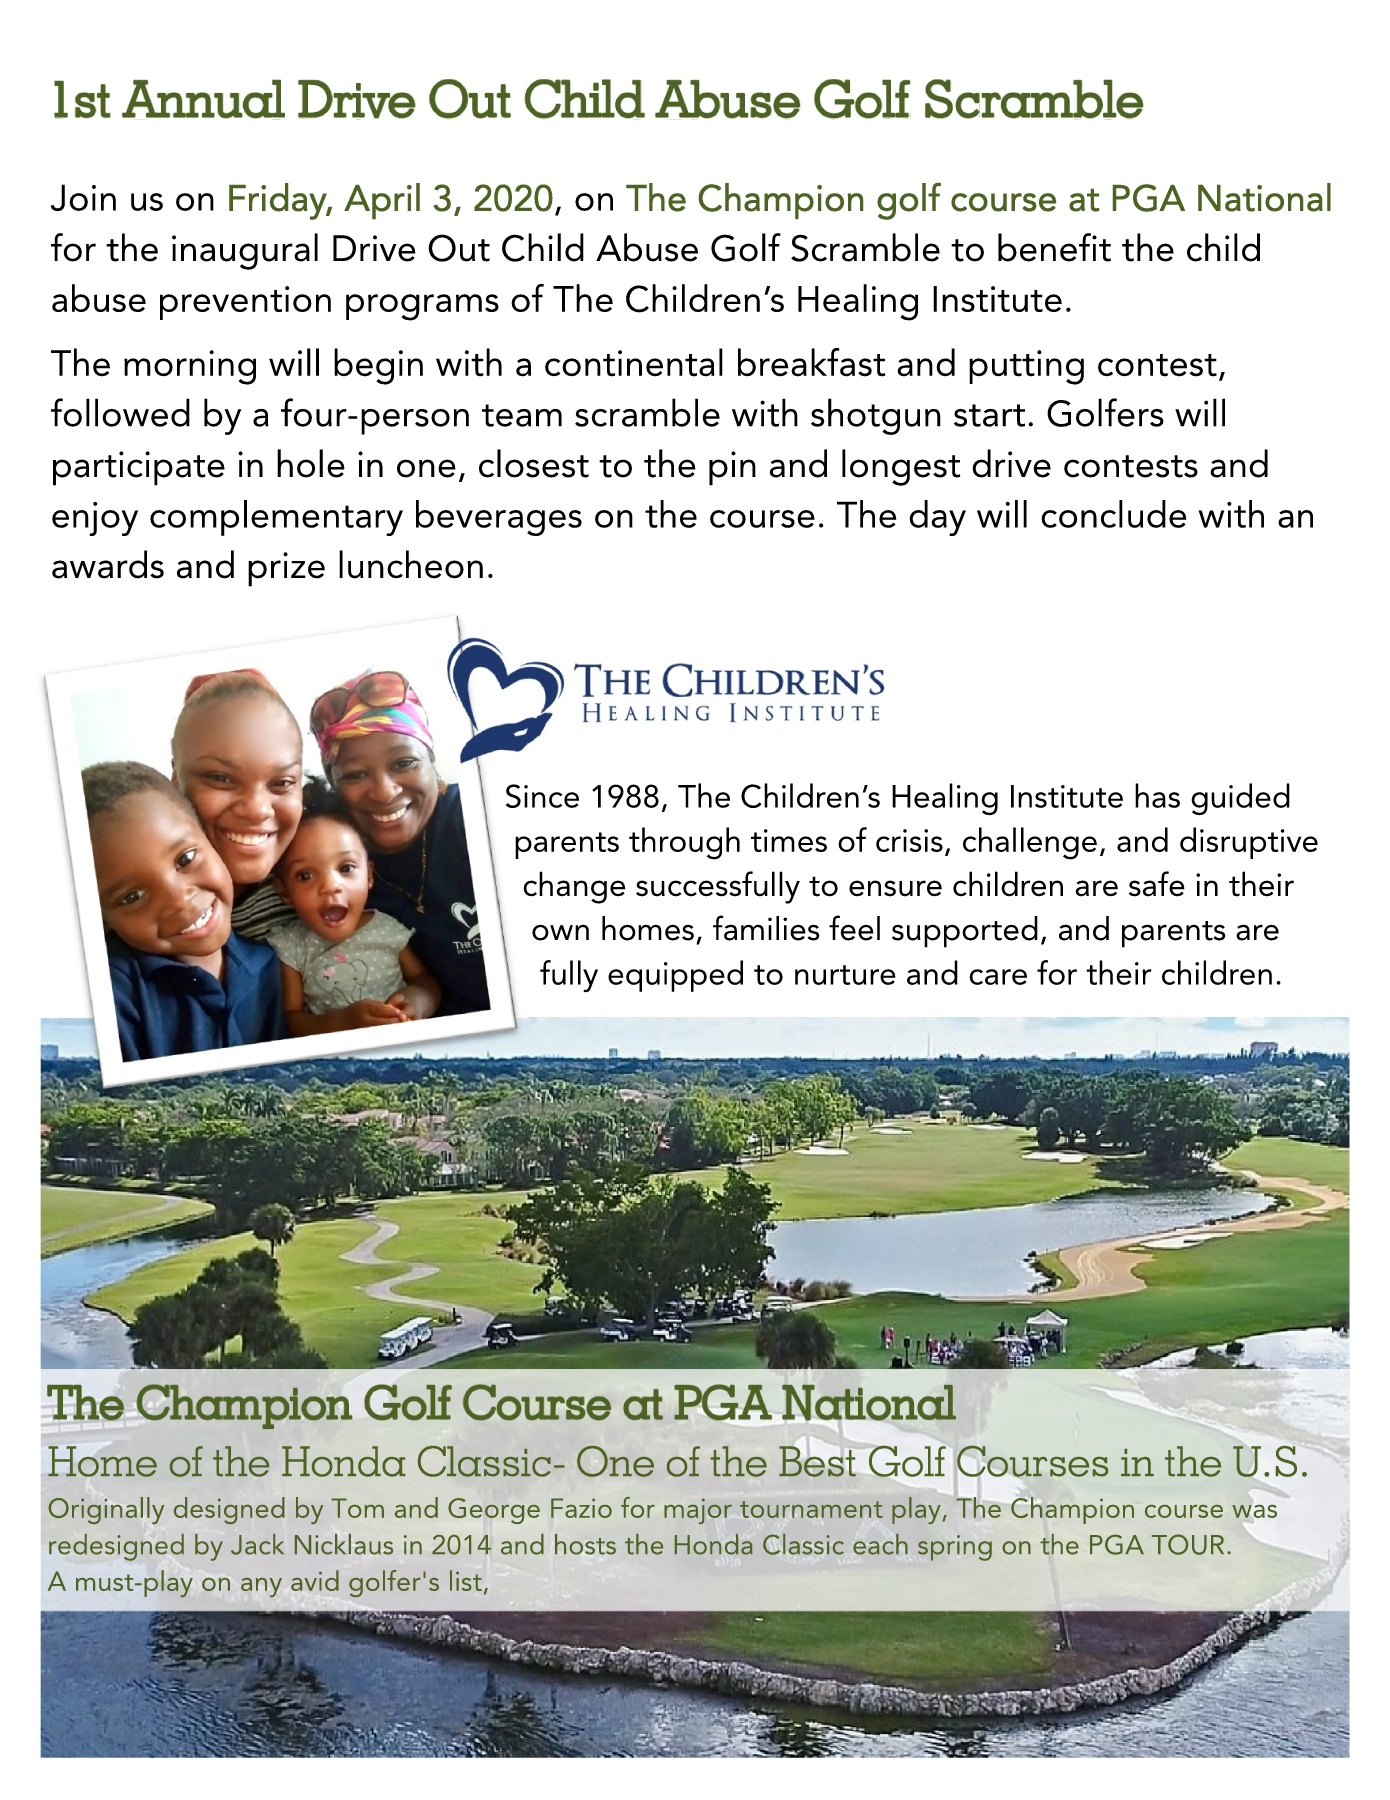 2020 Drive out Child Abuse Golf Scramble Pages 1 - 8 - Text Version